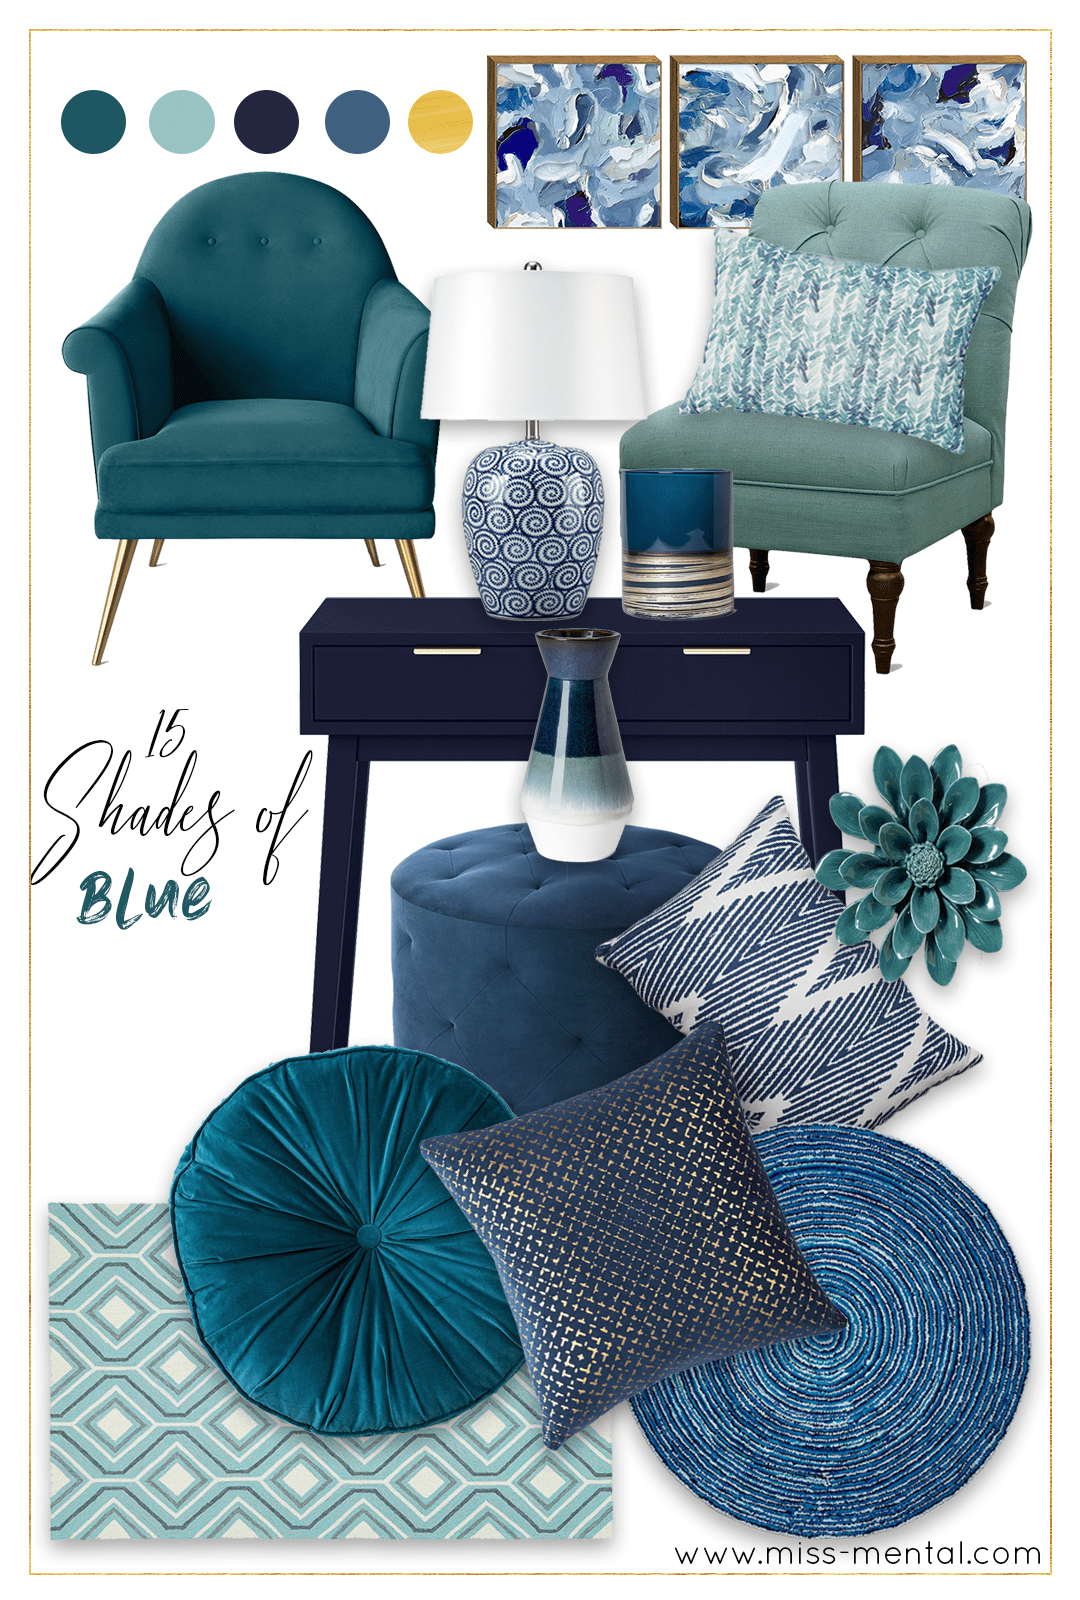 Target home decor blue inspiration + Target giveaway! Beautiful blue colors like turquoise and navy with a splash of gold here and there. Very modern, feminine and works in every home! Target sale code included, shop your fall/winter home decor now!